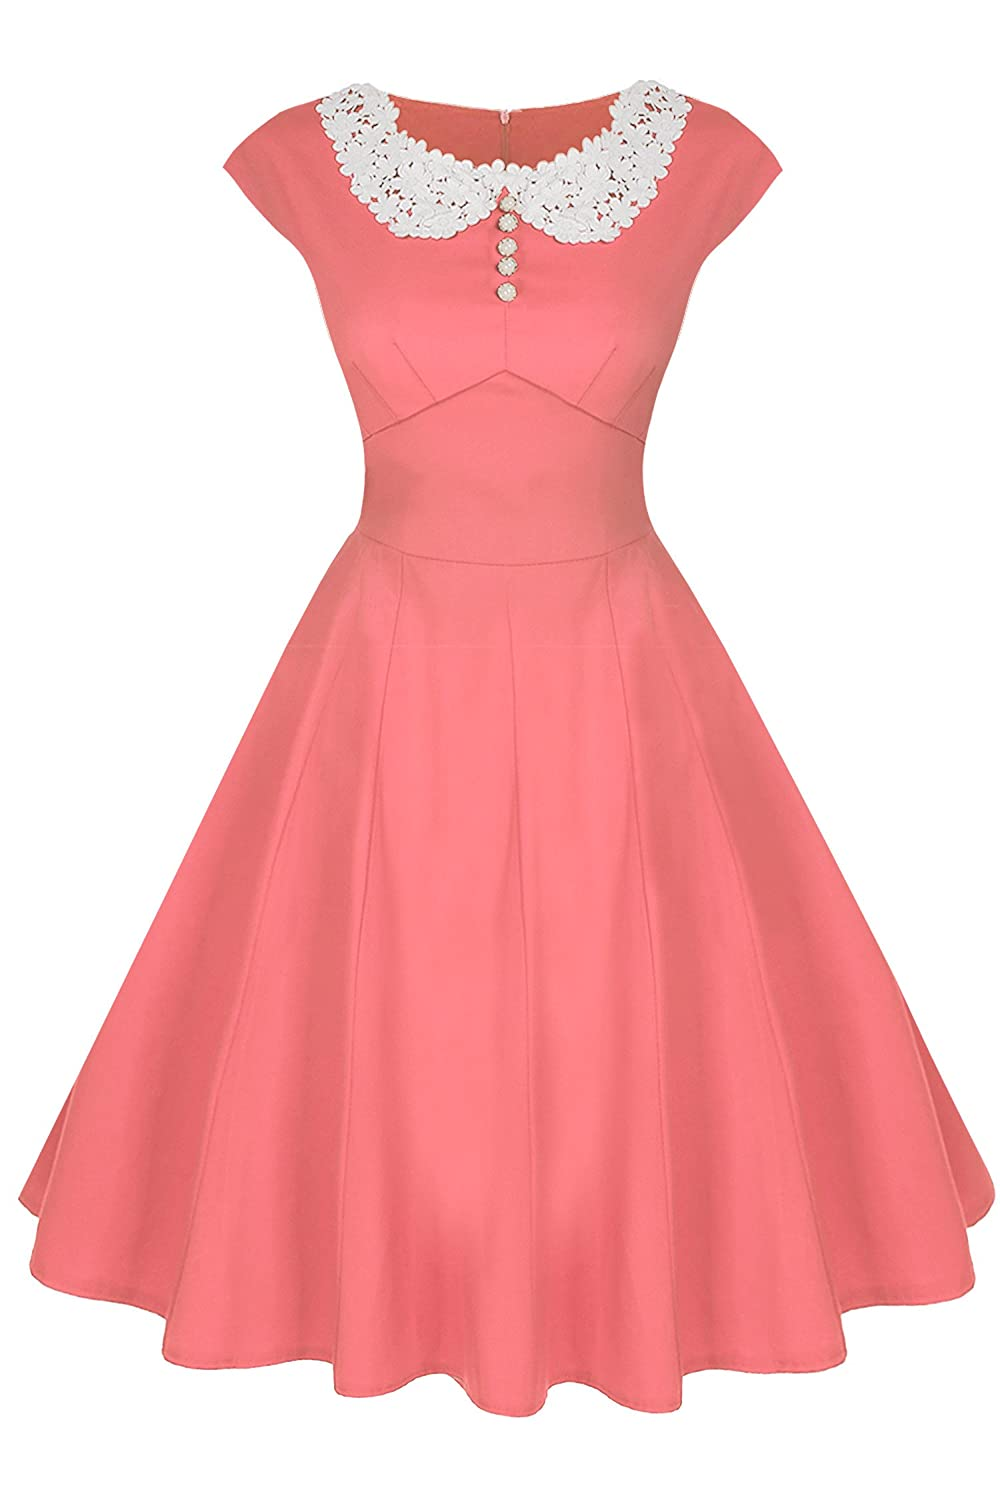 1960s Mad Men Dresses and Clothing Styles Audrey Hepburn Style 1940s Rockabilly Evening Dress $32.99 AT vintagedancer.com